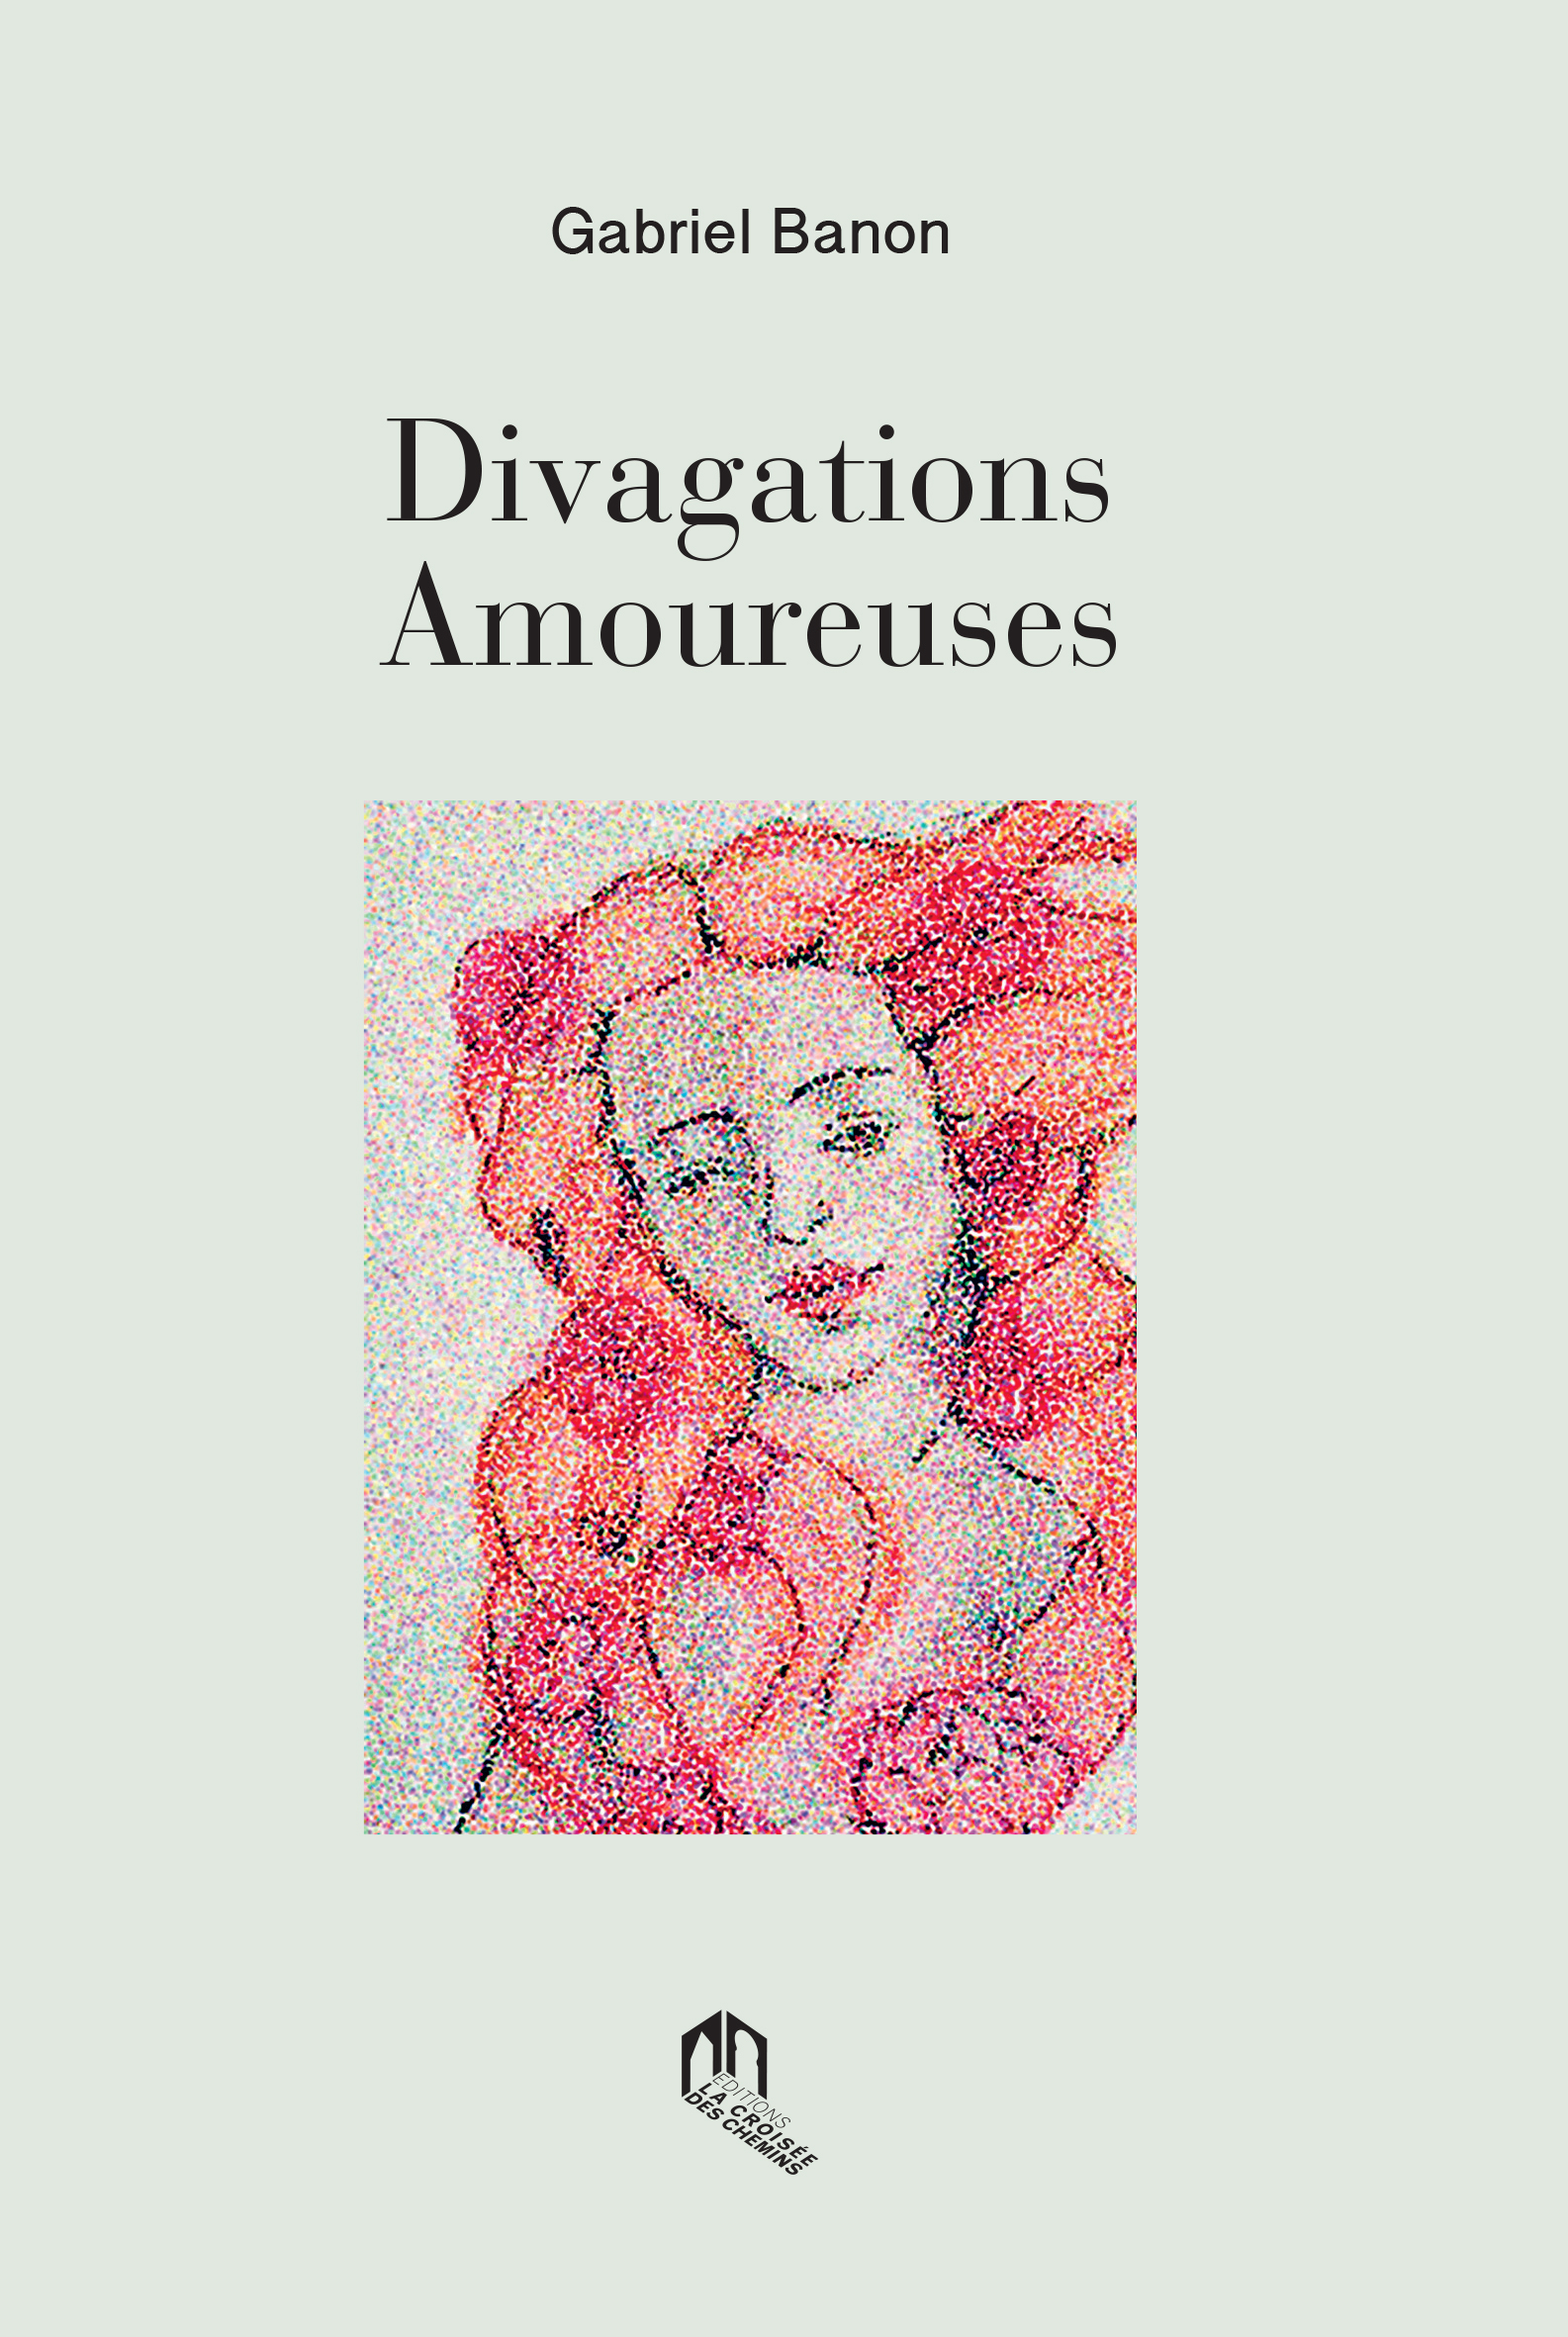 DIVAGATIONS AMOUREUSES